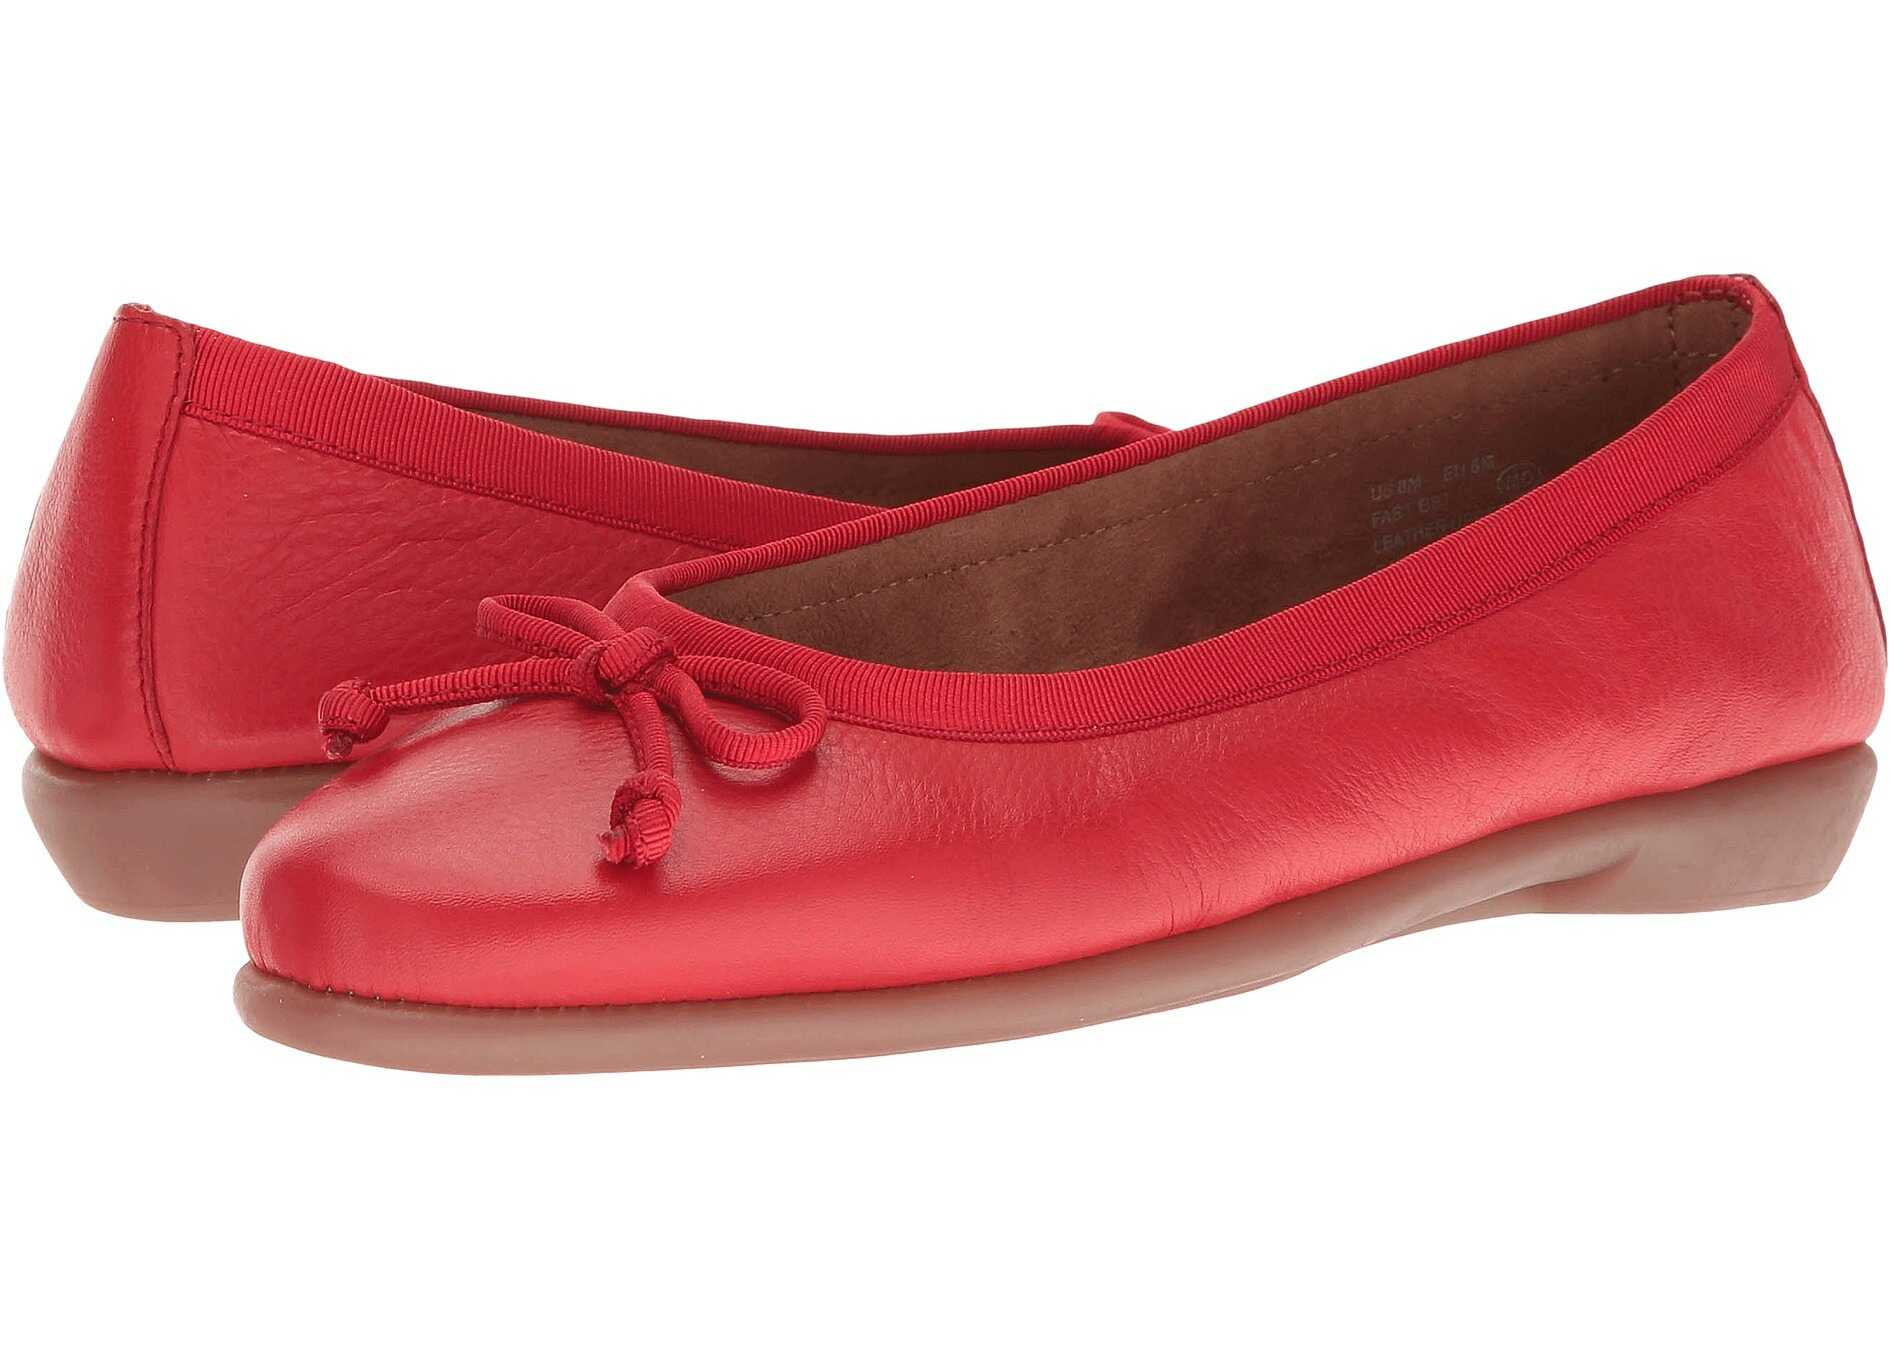 Aerosoles Fast Bet Red Leather